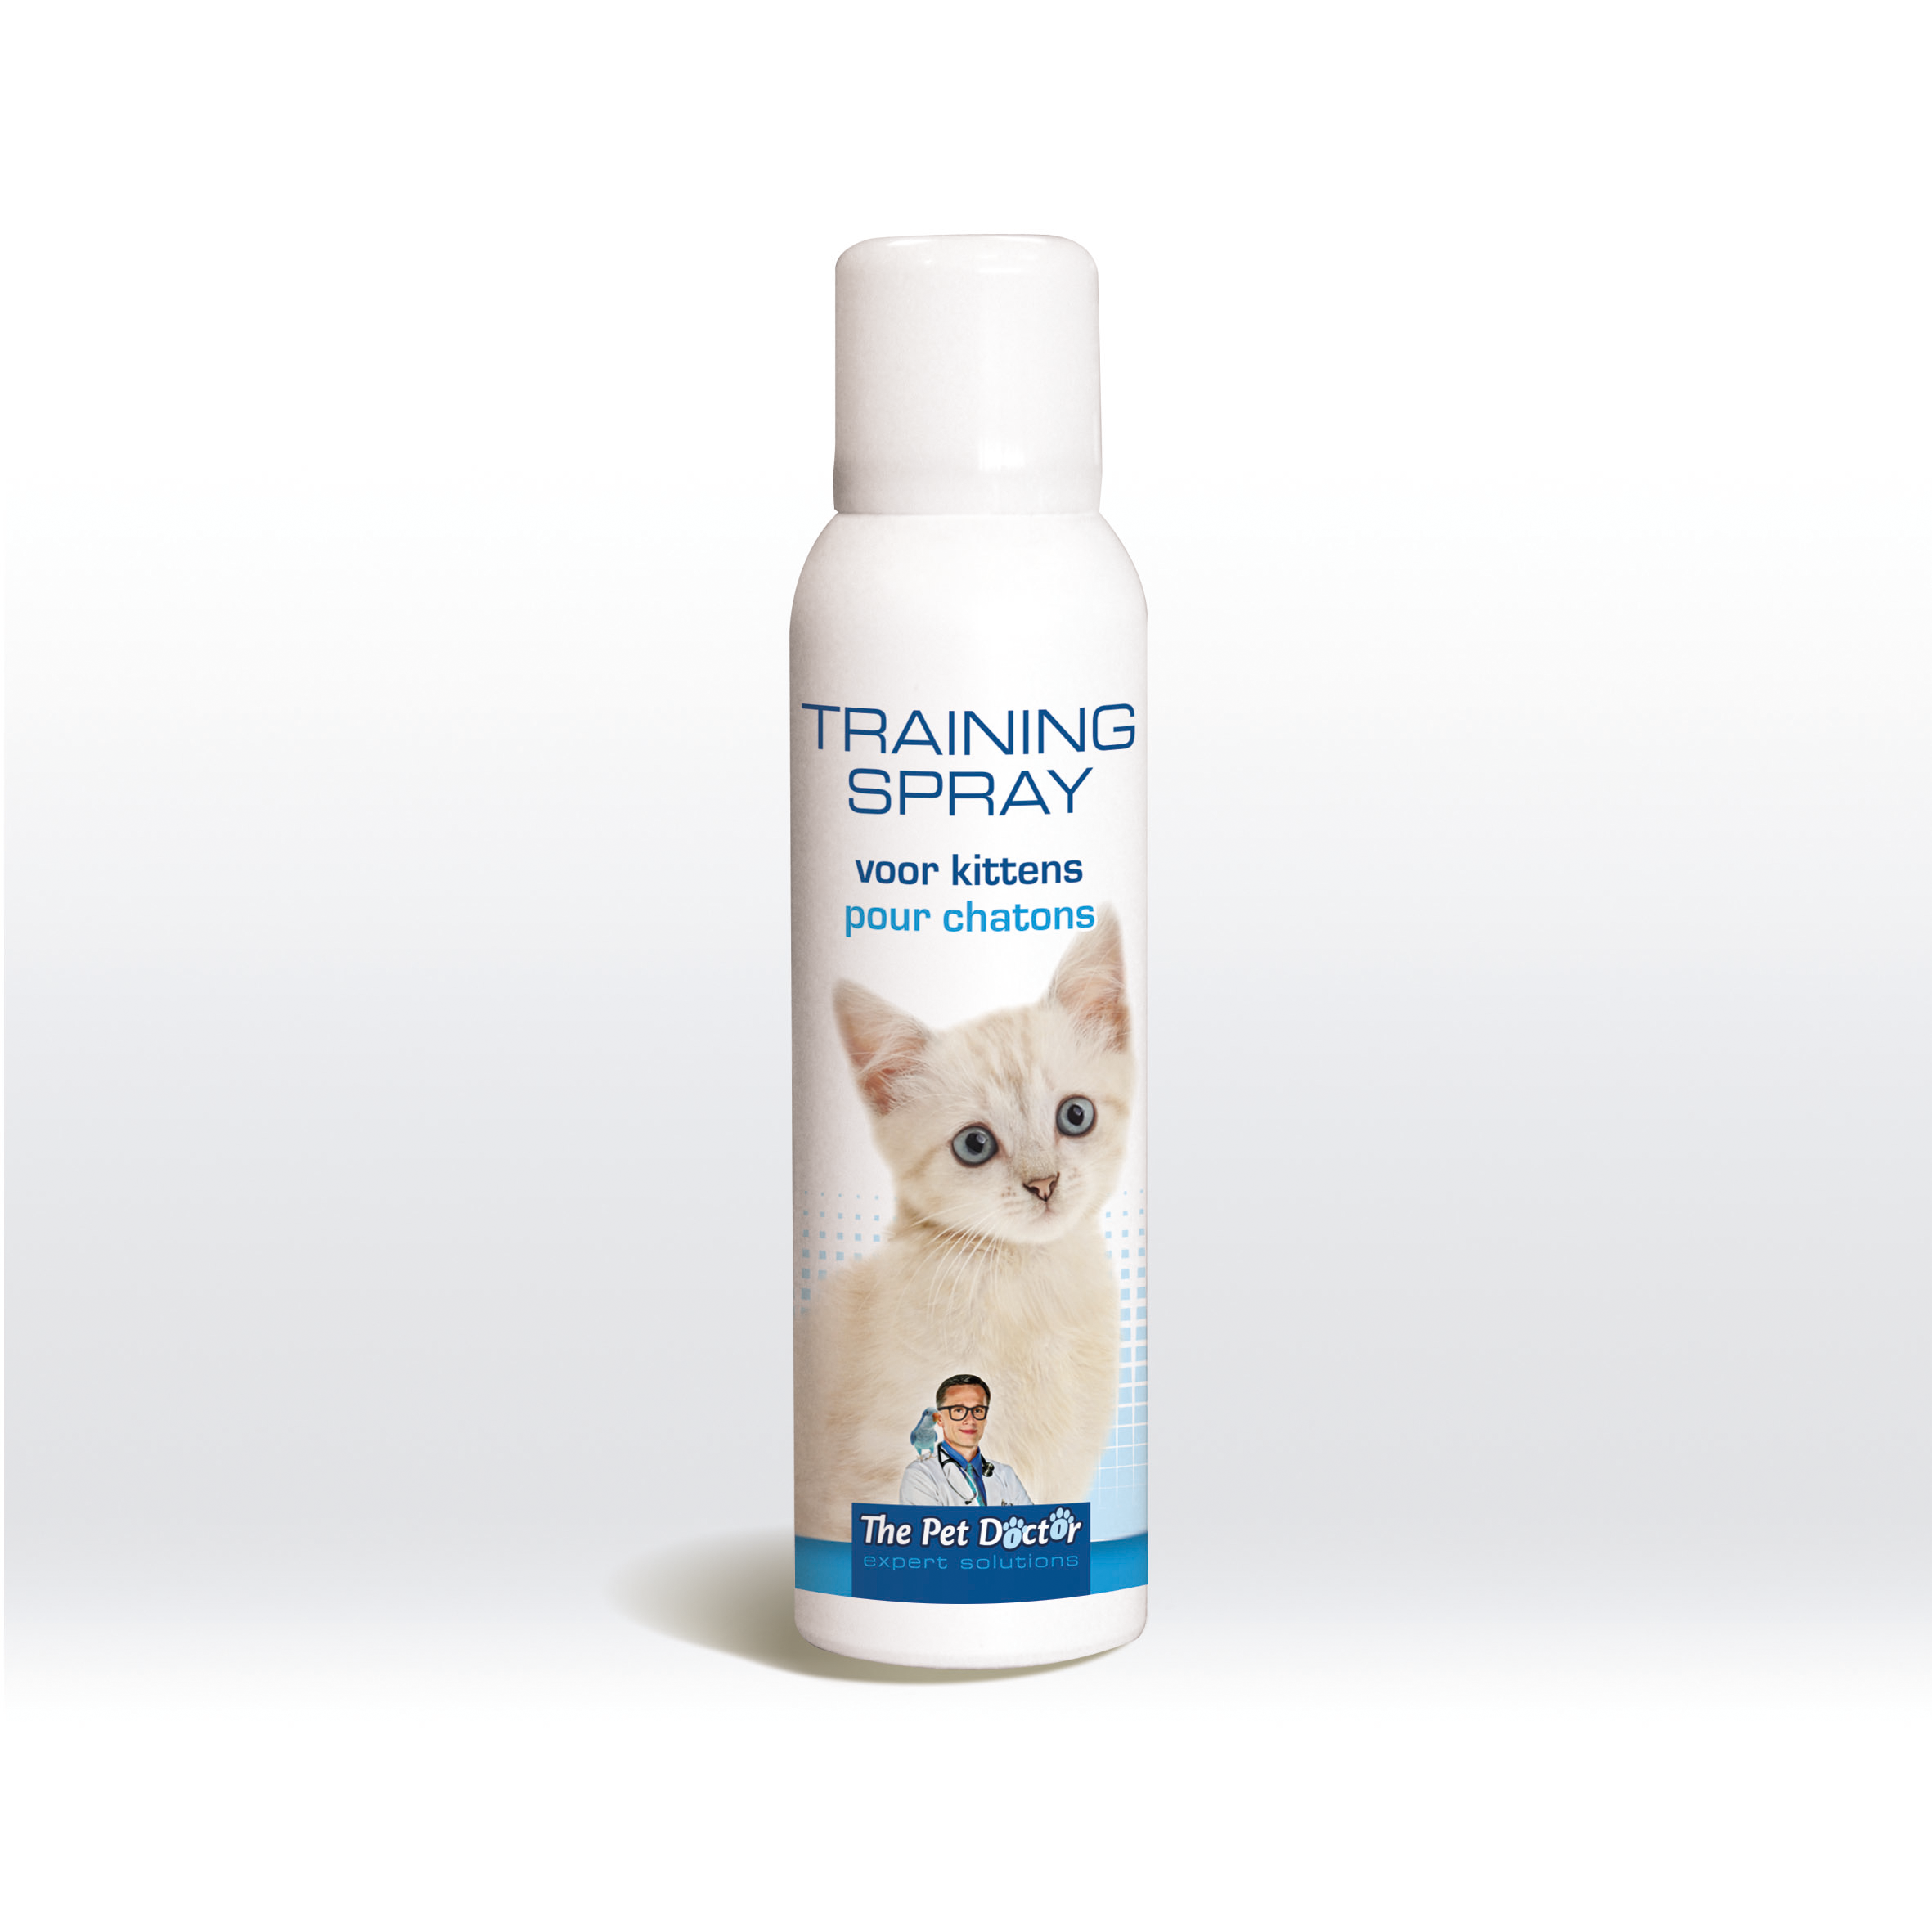 The Pet Doctor Training Spray Kitten 120 ml image